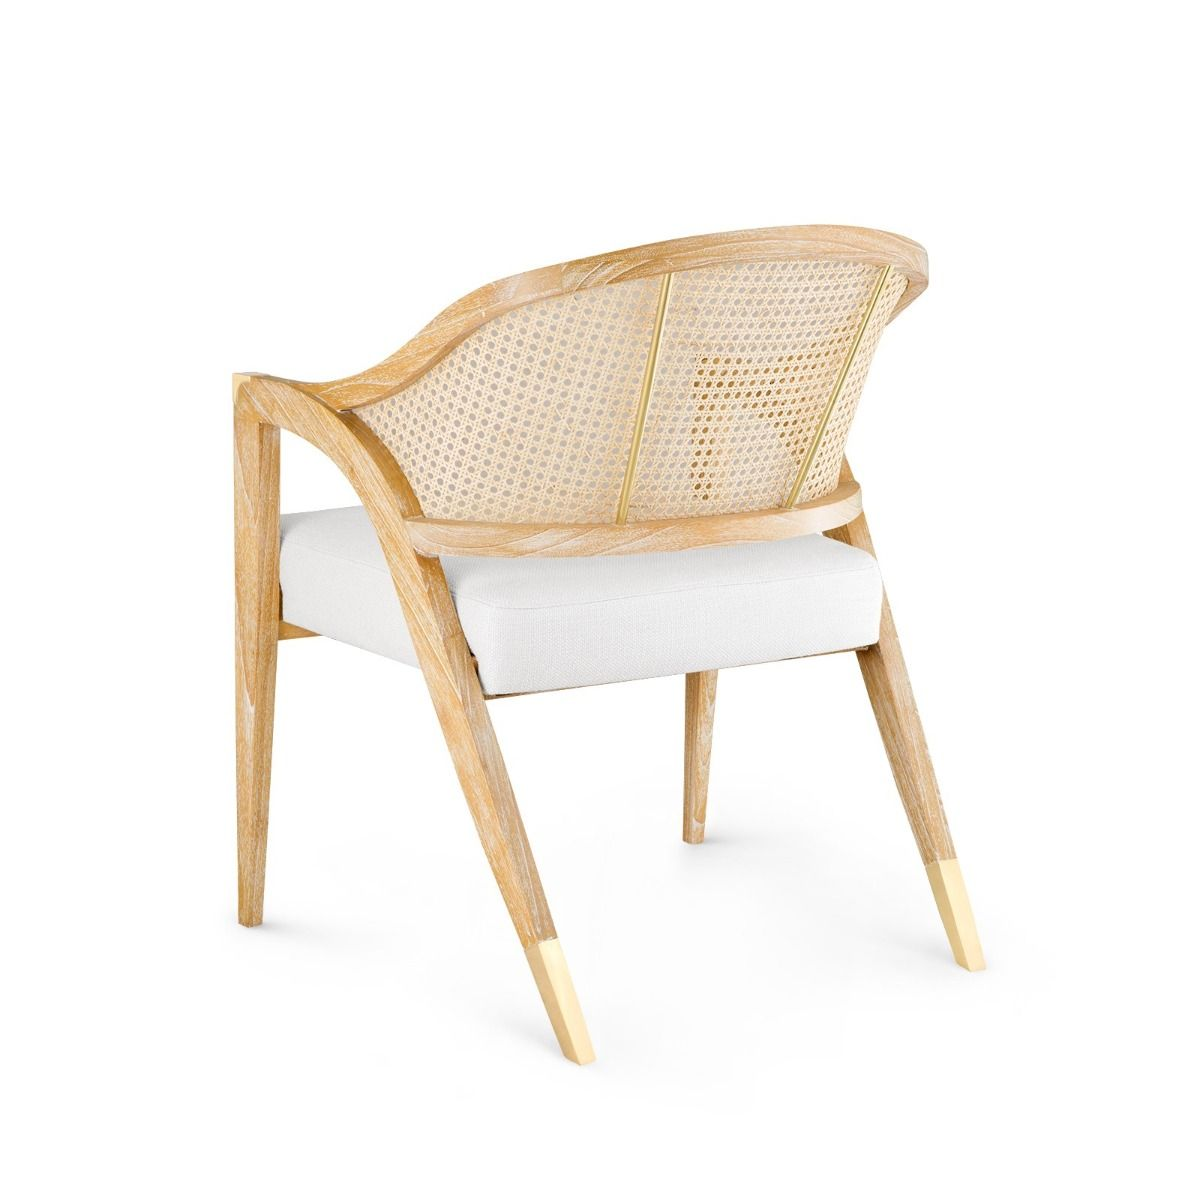 Bungalow 5 - EDWARD LOUNGE CHAIR, NATURAL-Bungalow 5-Blue Hand Home